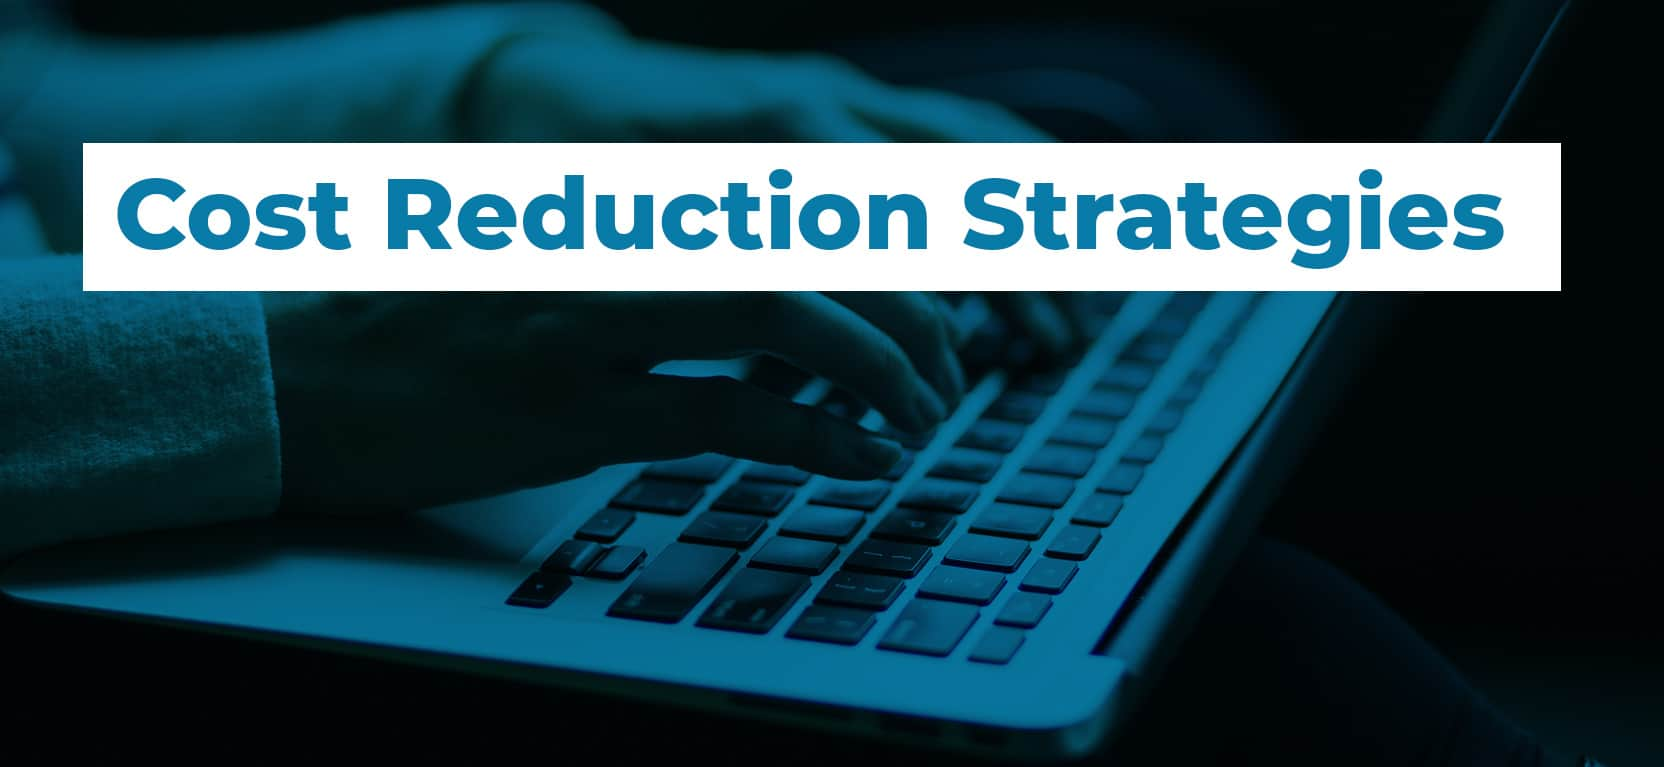 40 Cost Reduction Strategies2 1